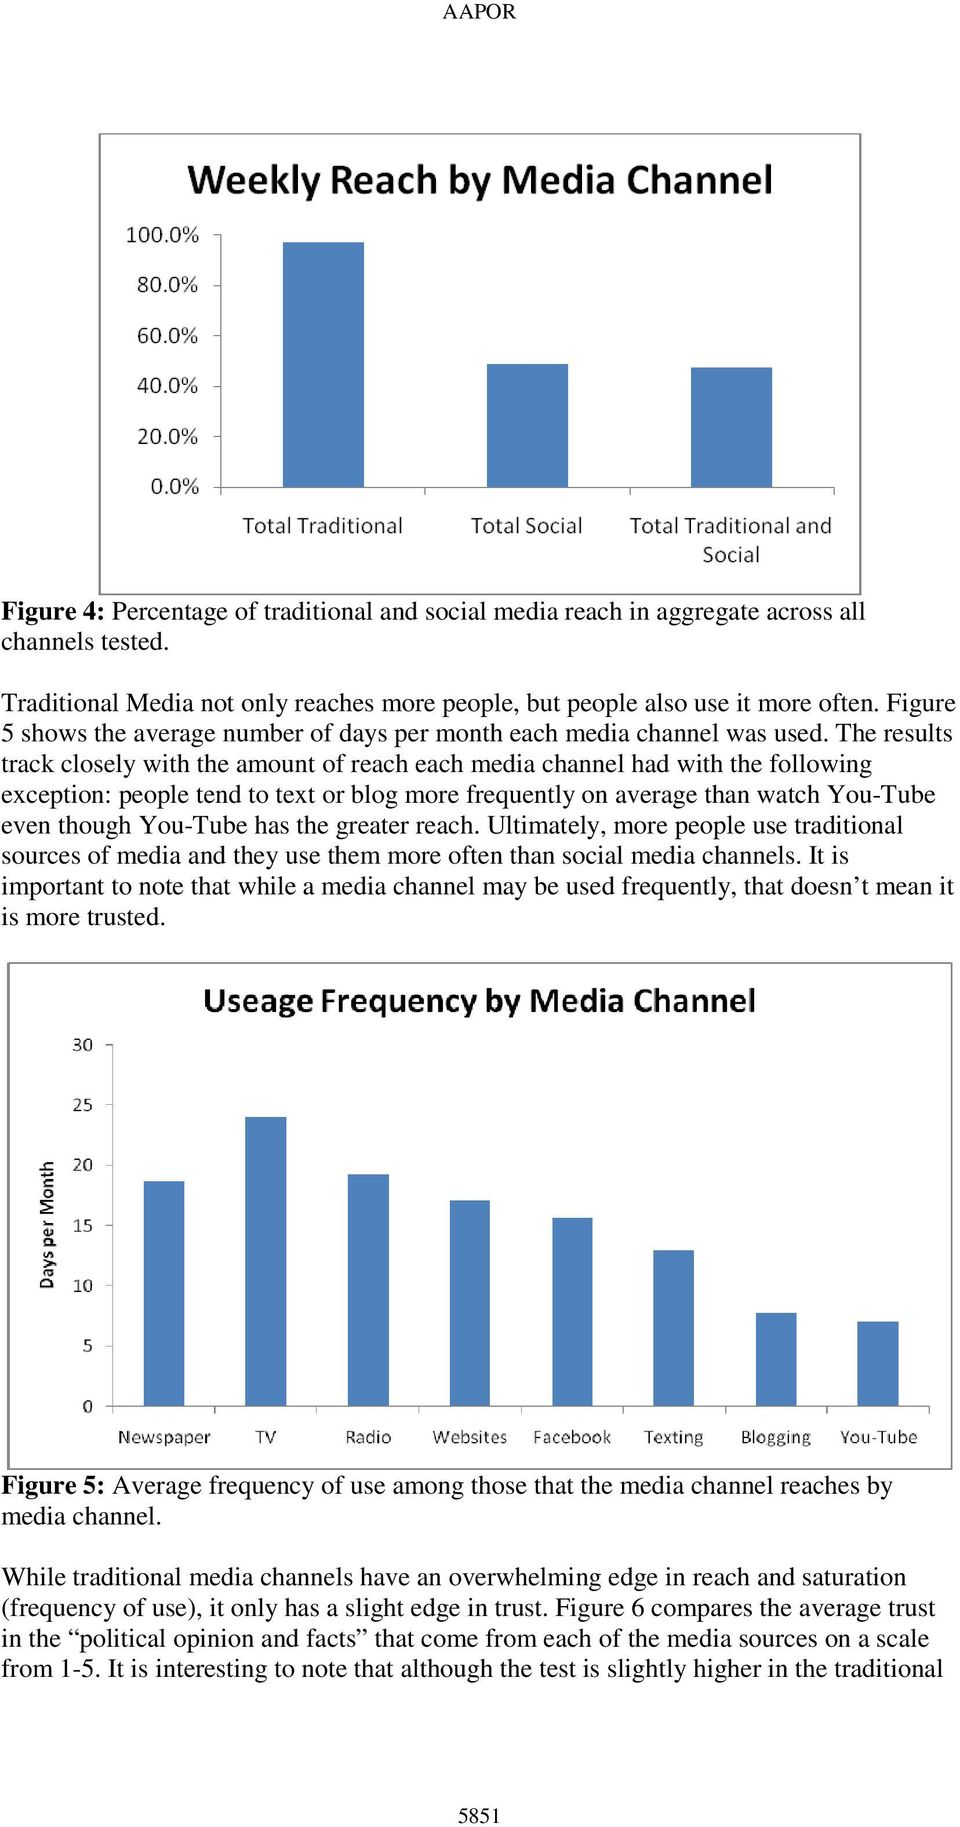 The results track closely with the amount of reach each media channel had with the following exception: people tend to text or blog more frequently on average than watch You-Tube even though You-Tube